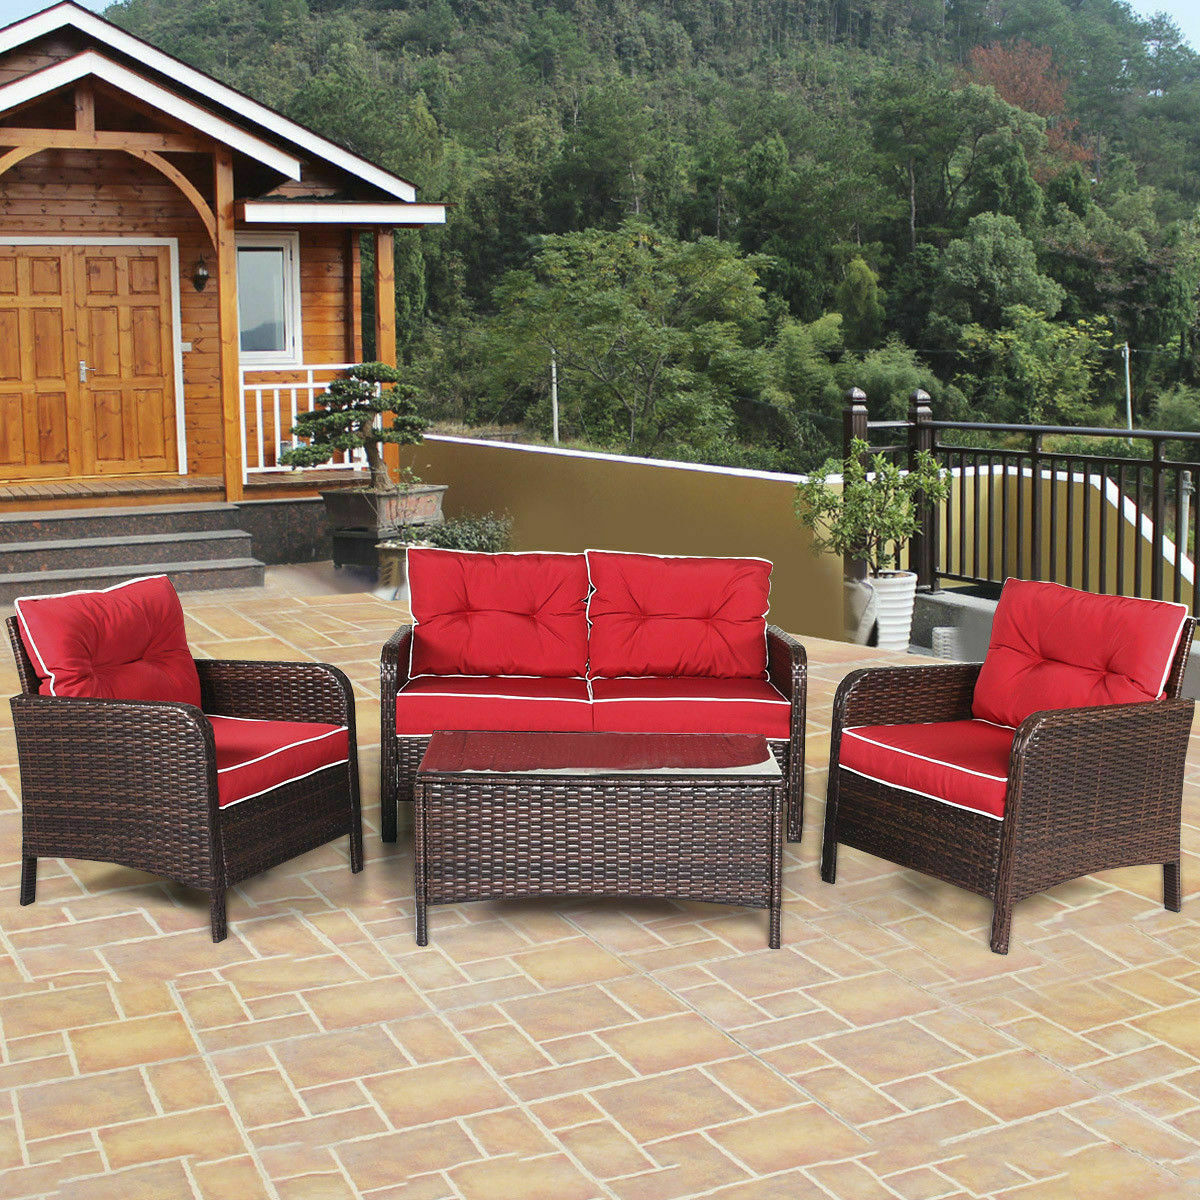 Halsted wicker patio outdoor loveseat red cushions furniture weather protection for sale online ebay